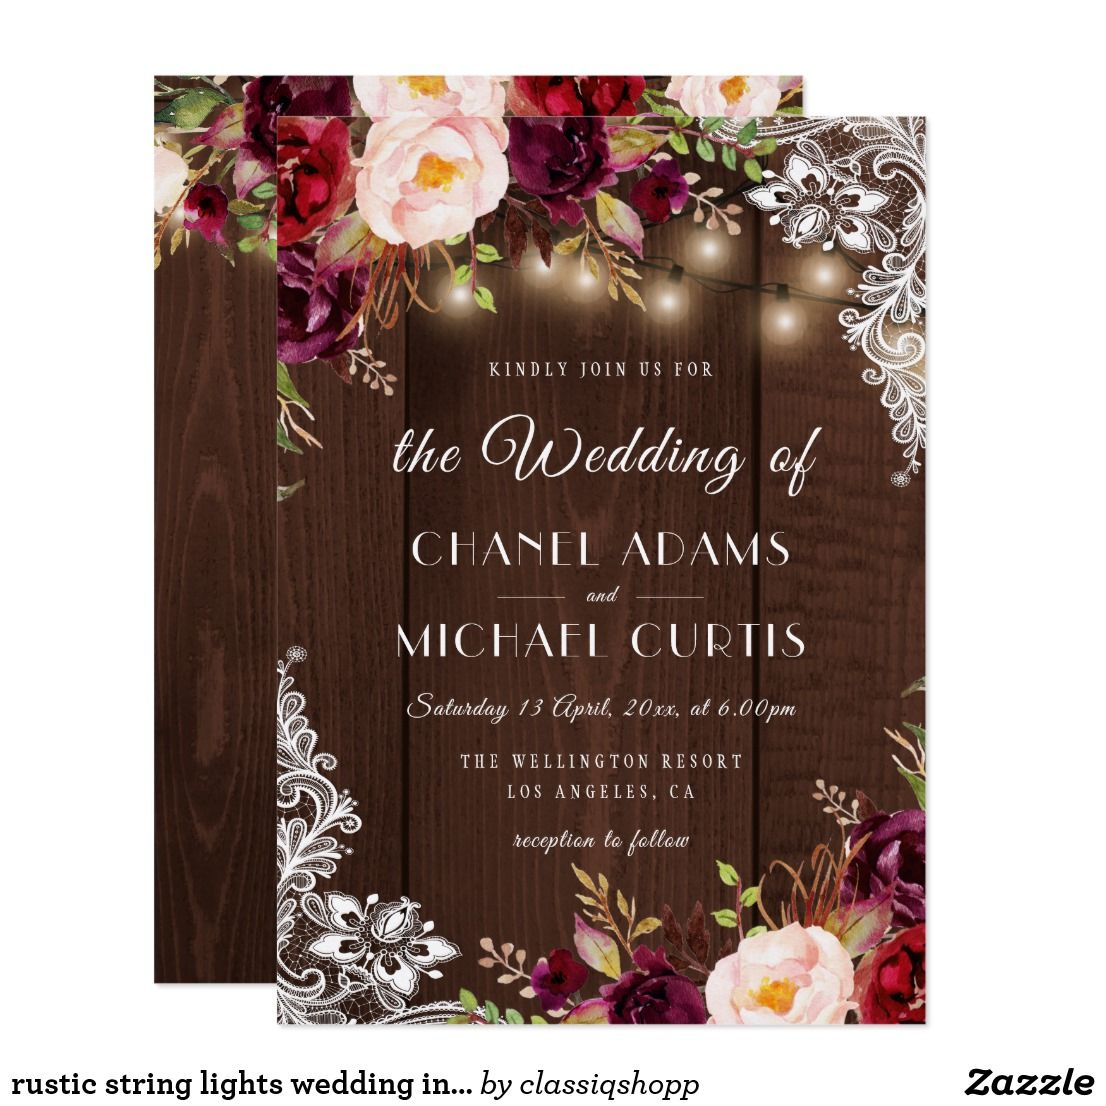 Pin on NiceLooking String Lights Themed Wedding